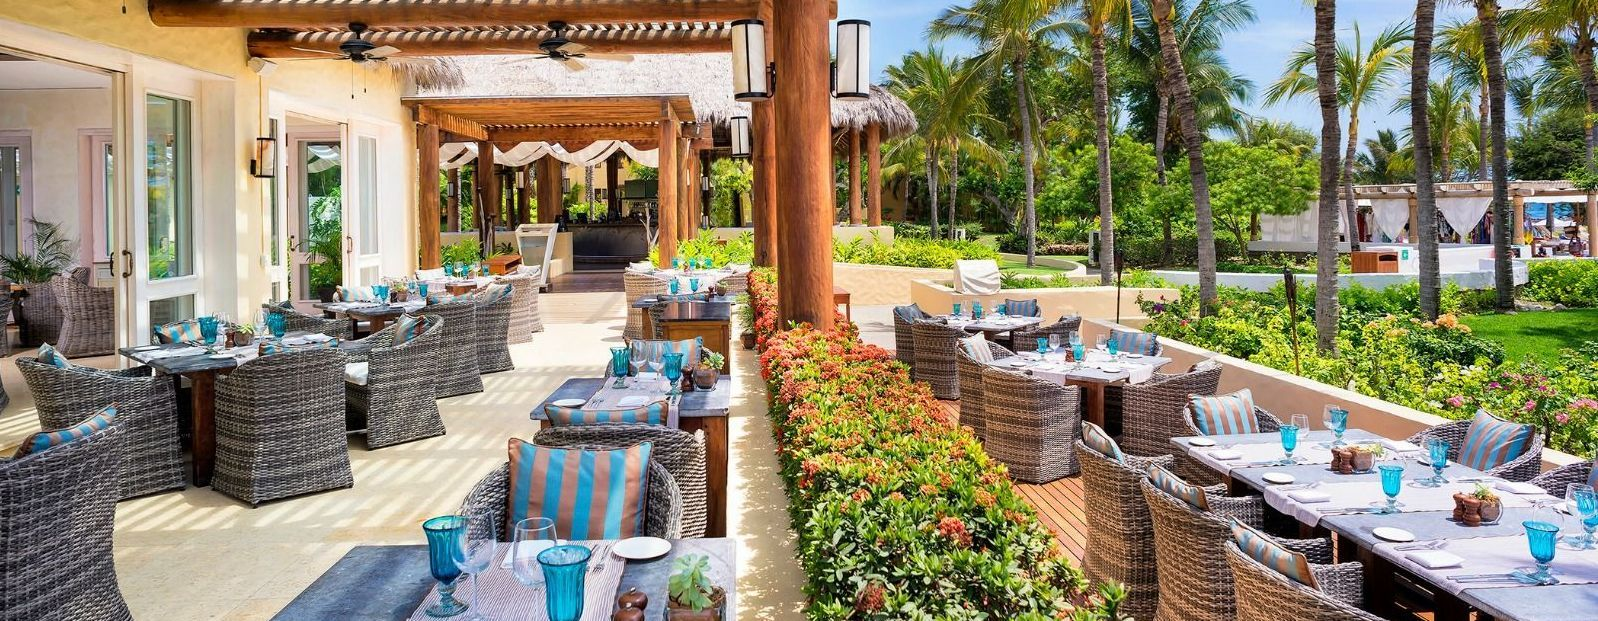 St. Regis Punta Mita Resort - Sea Breeze Restaurant Terrace